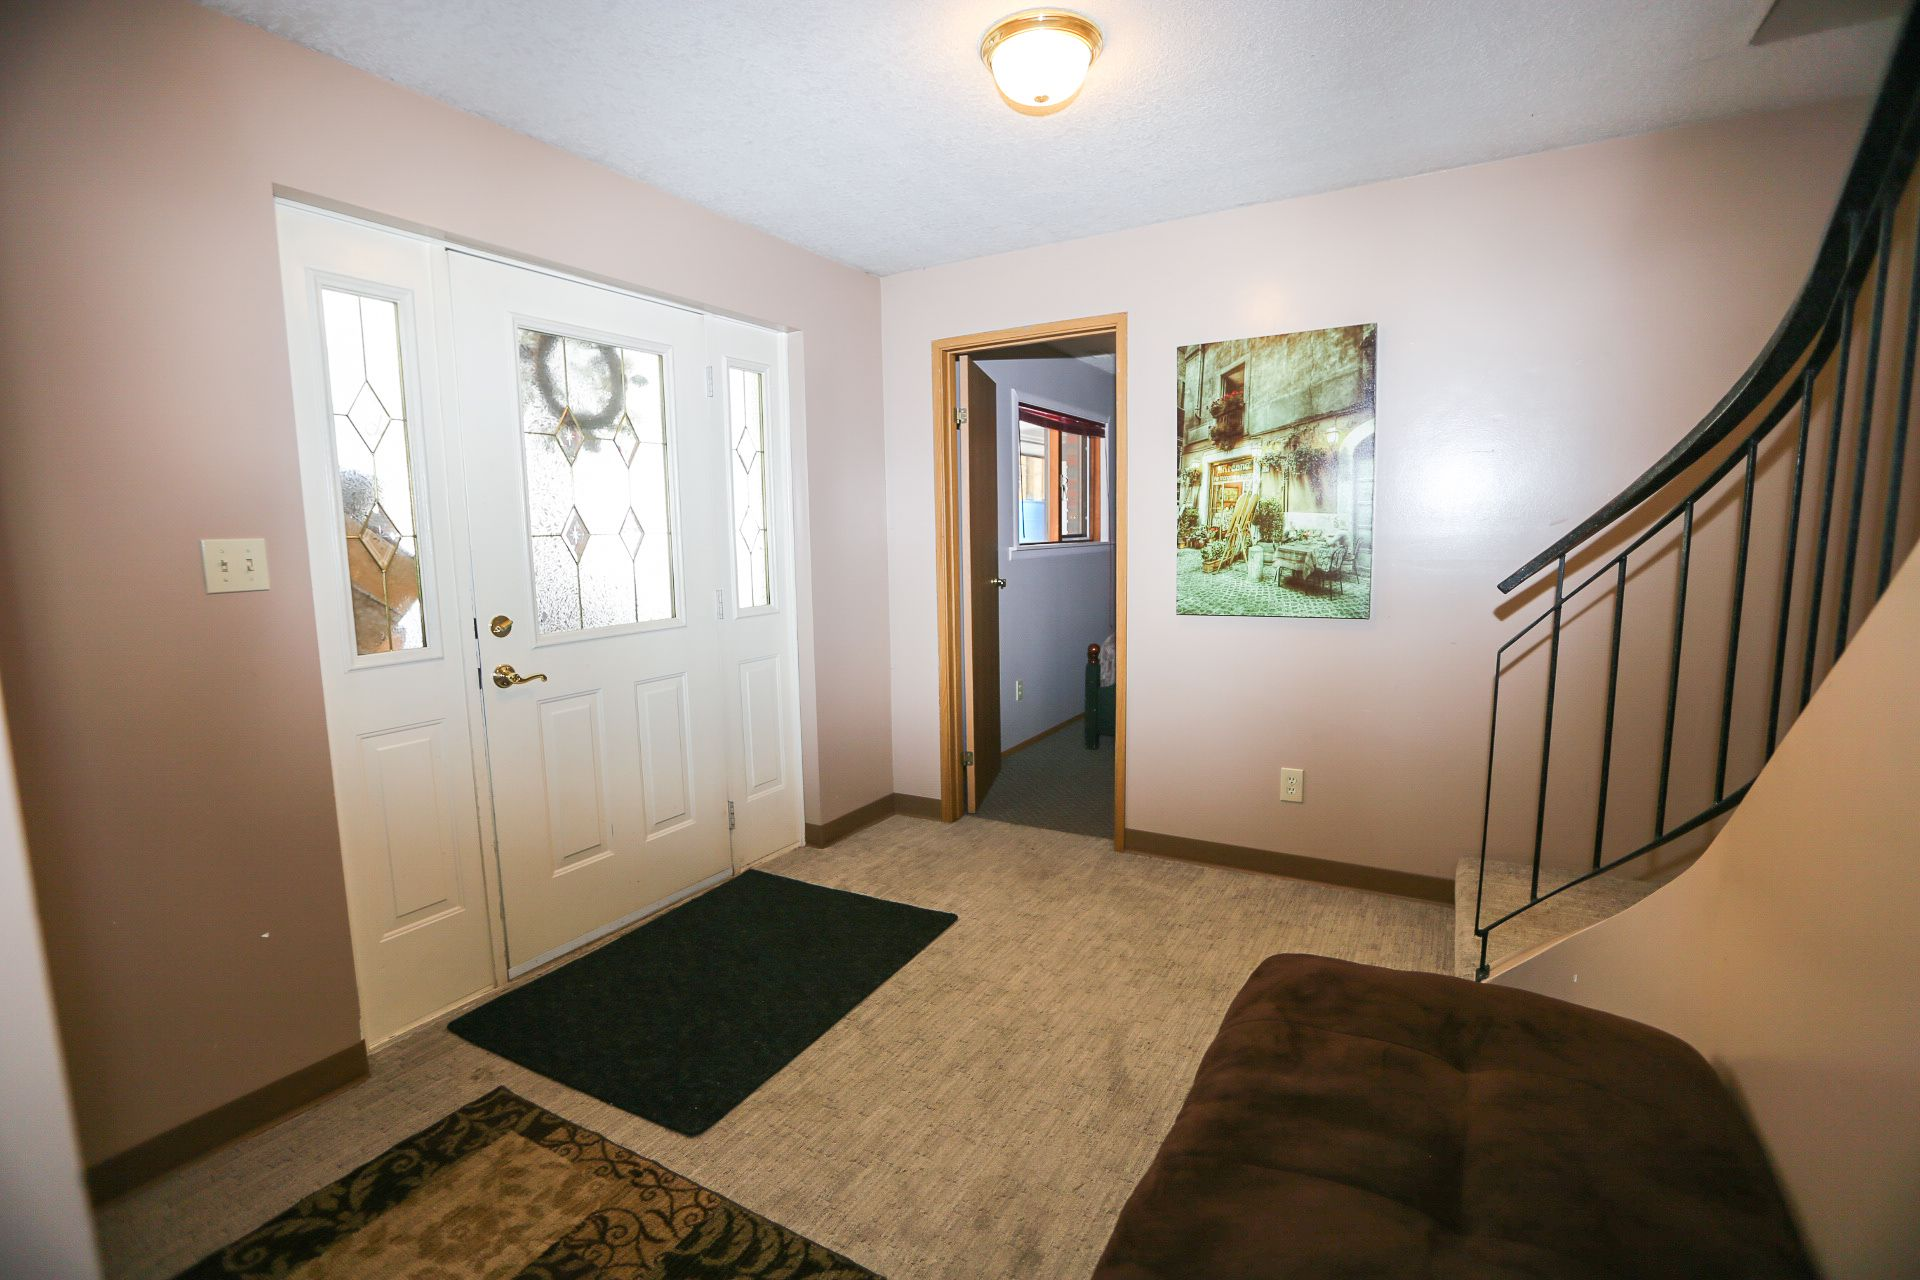 Photo 27: Photos: 434 ROBIN DRIVE: BARRIERE House for sale (NORTH EAST)  : MLS®# 160553